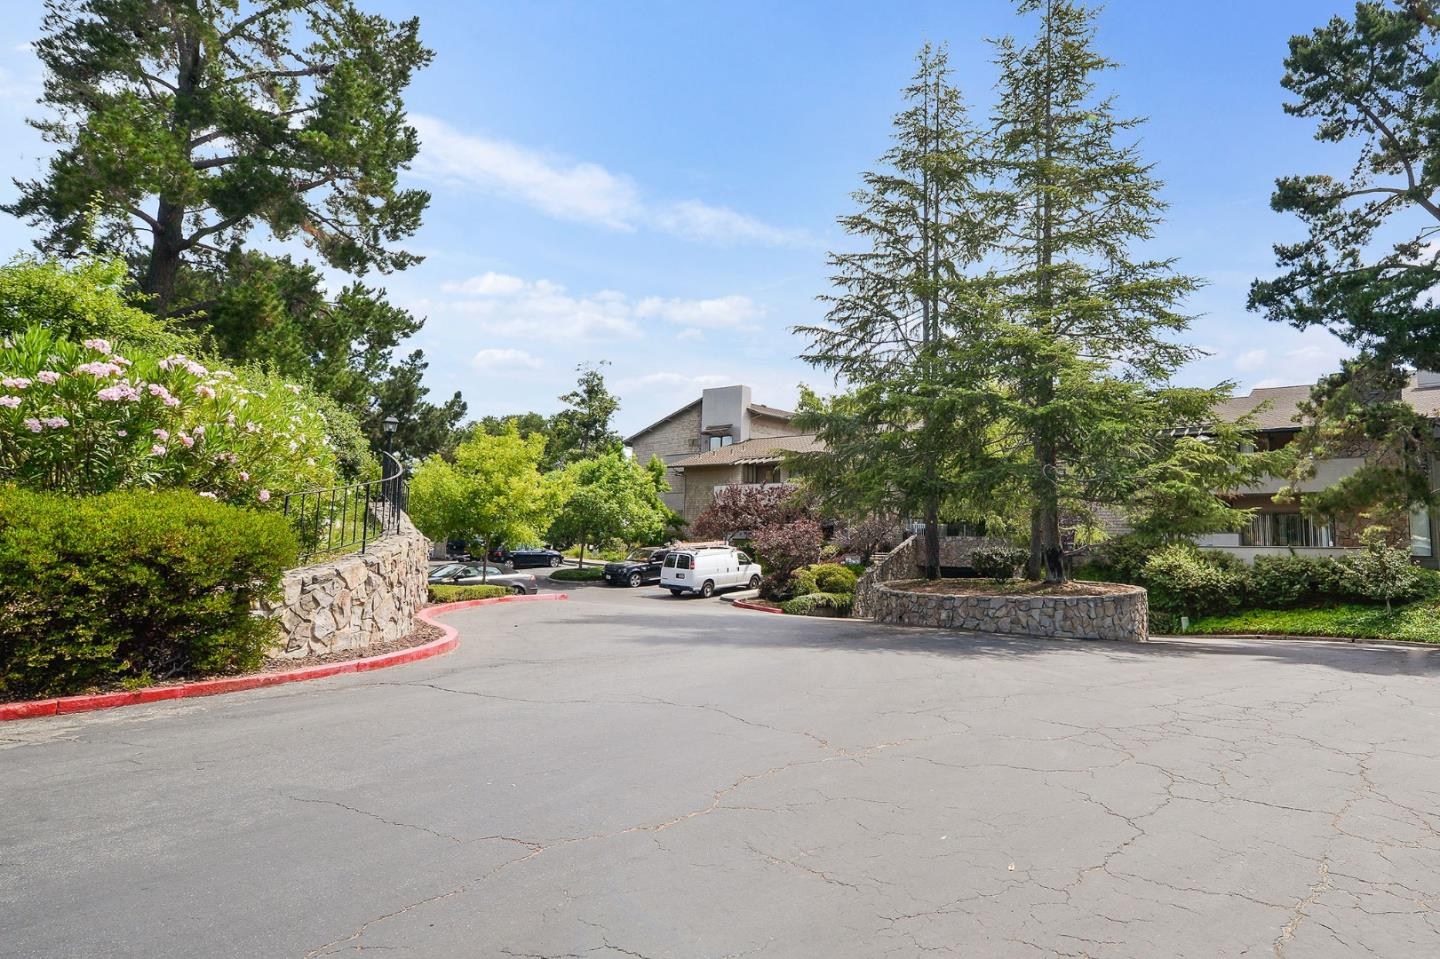 30 Mansion CT 811, Menlo Park, California